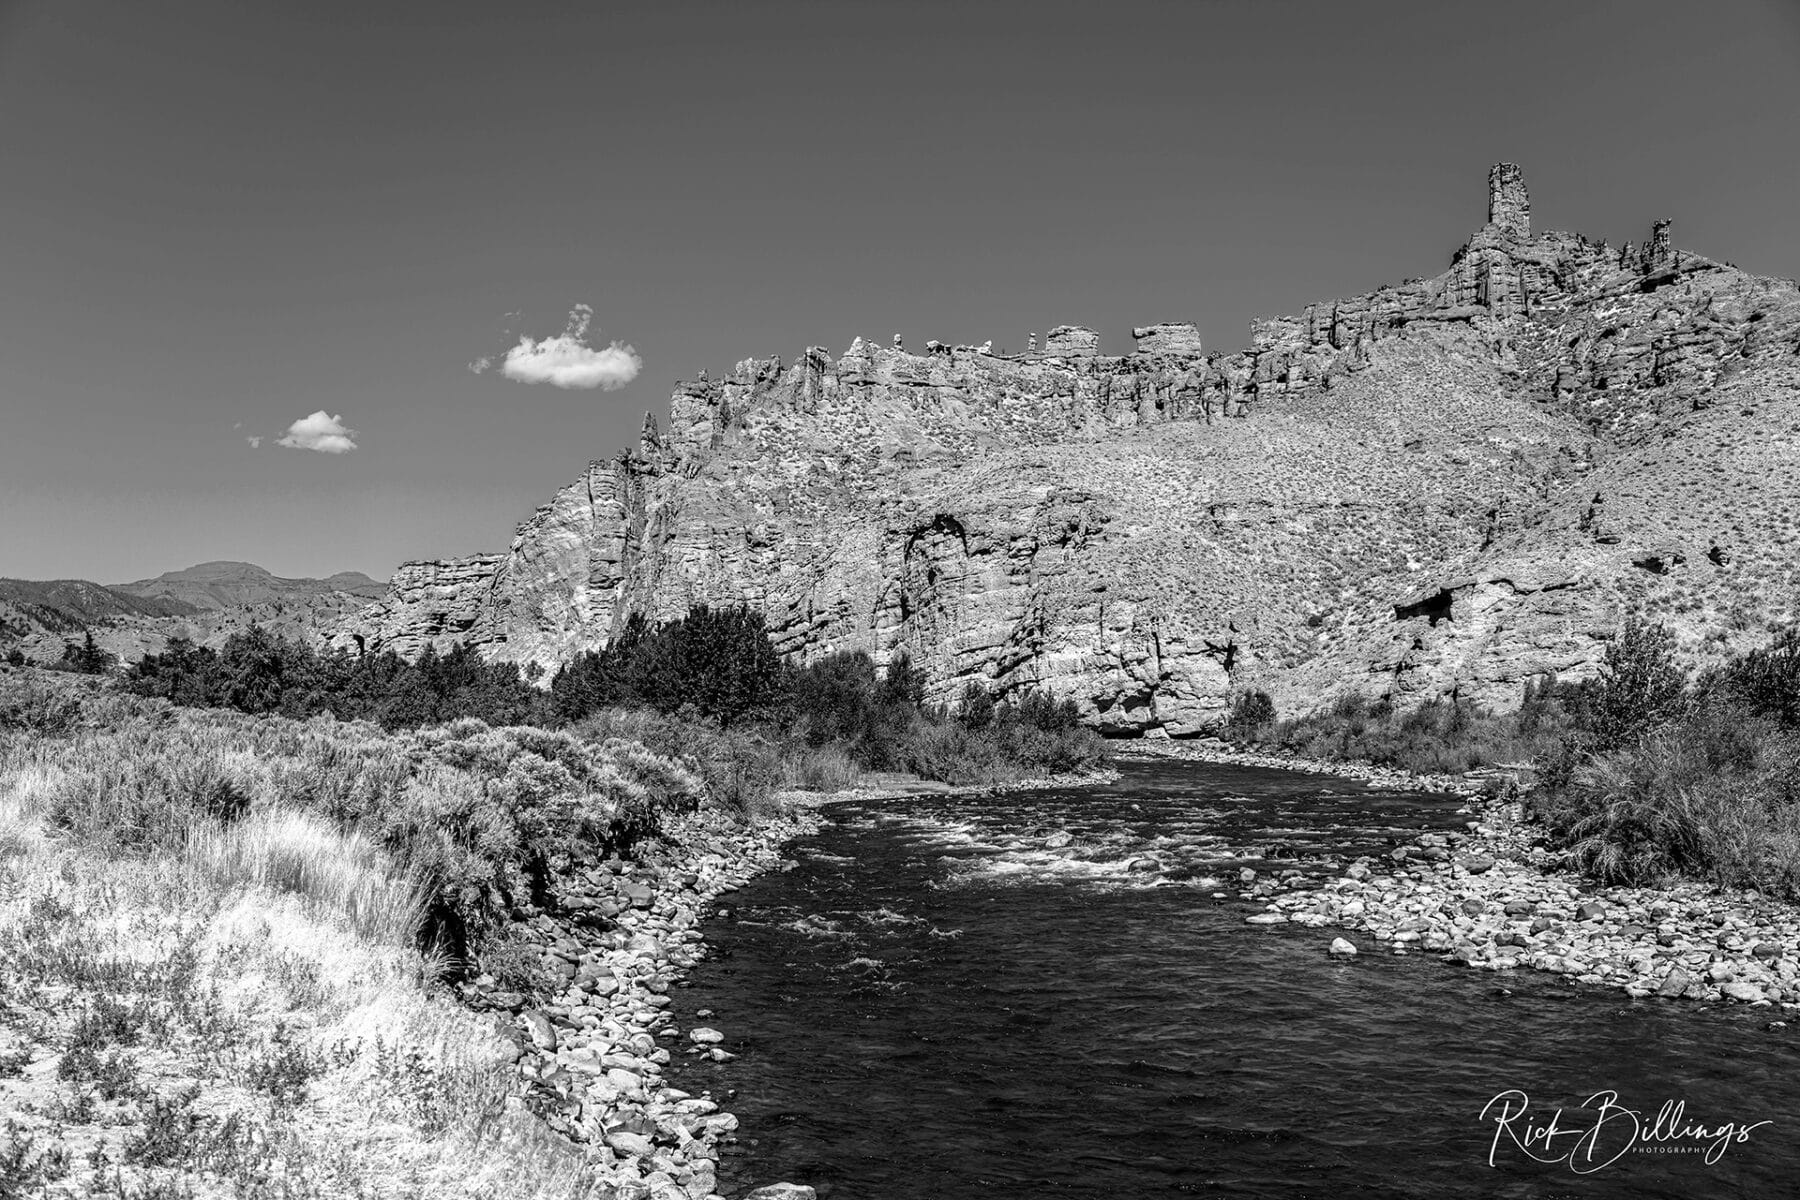 No 1032 20190819 Yellowstone River